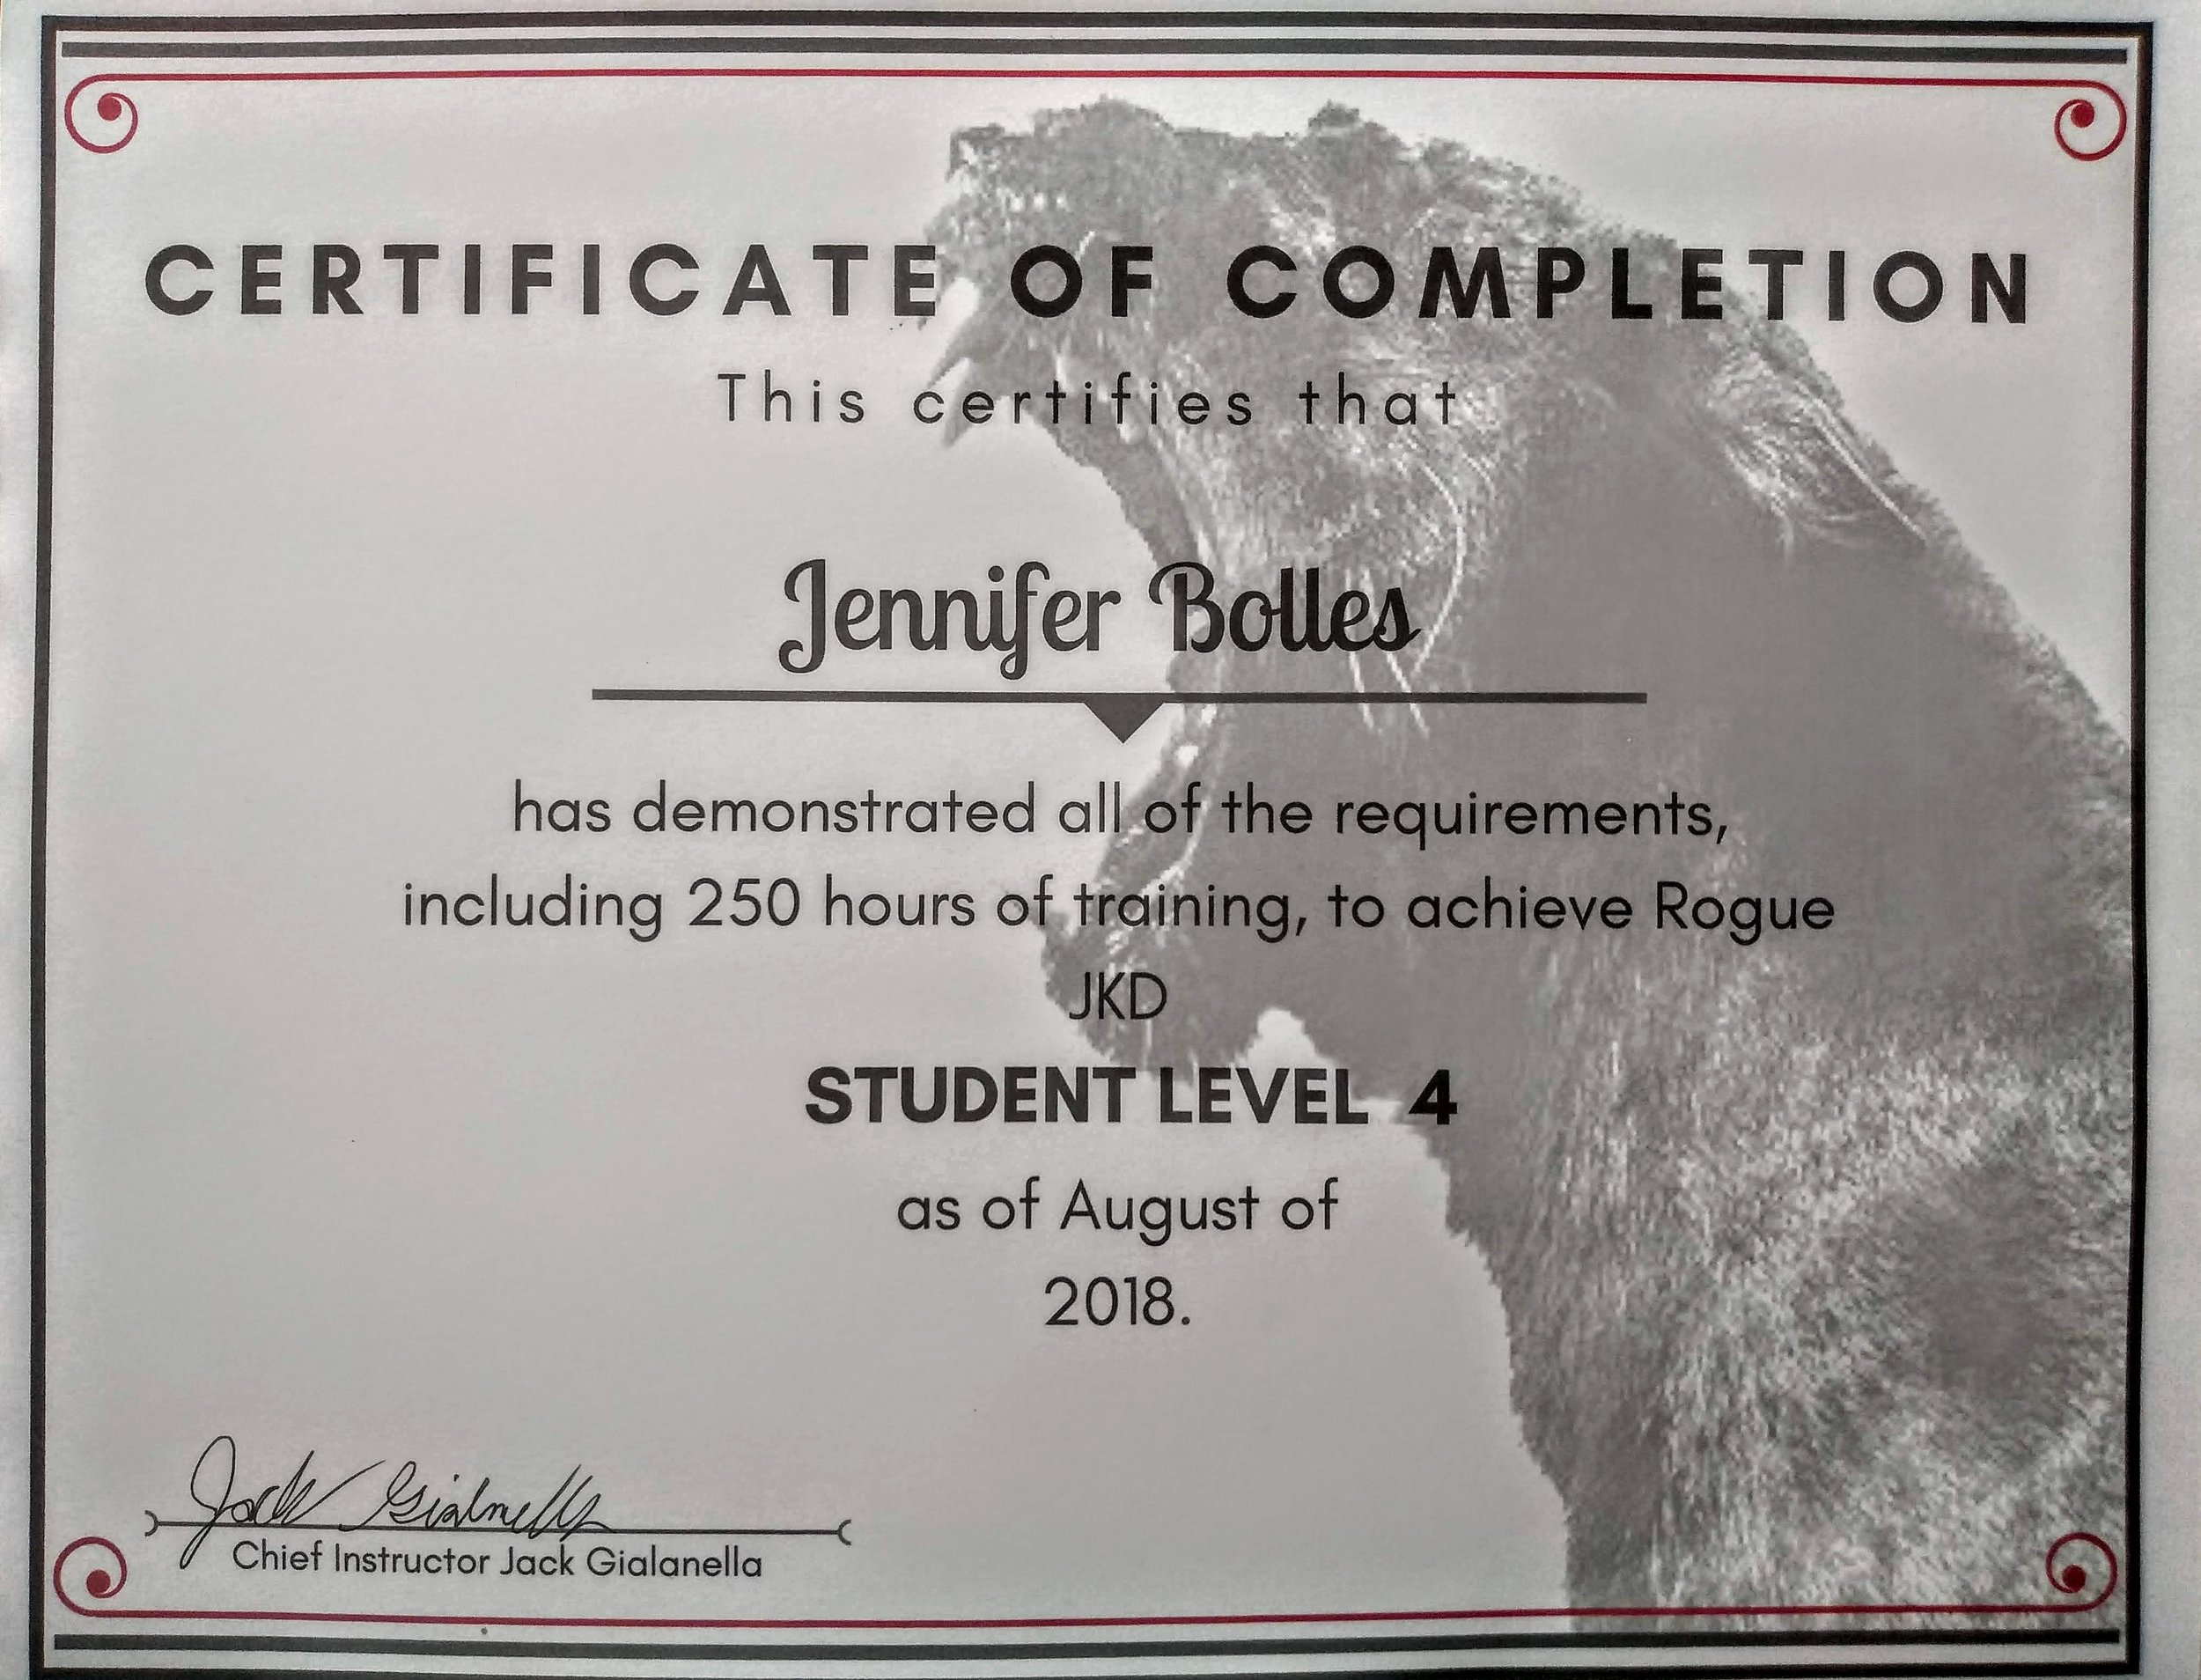 Rogue JKD, Filipino Martial Arts, and Self-Defense Student Level 4 - 2018